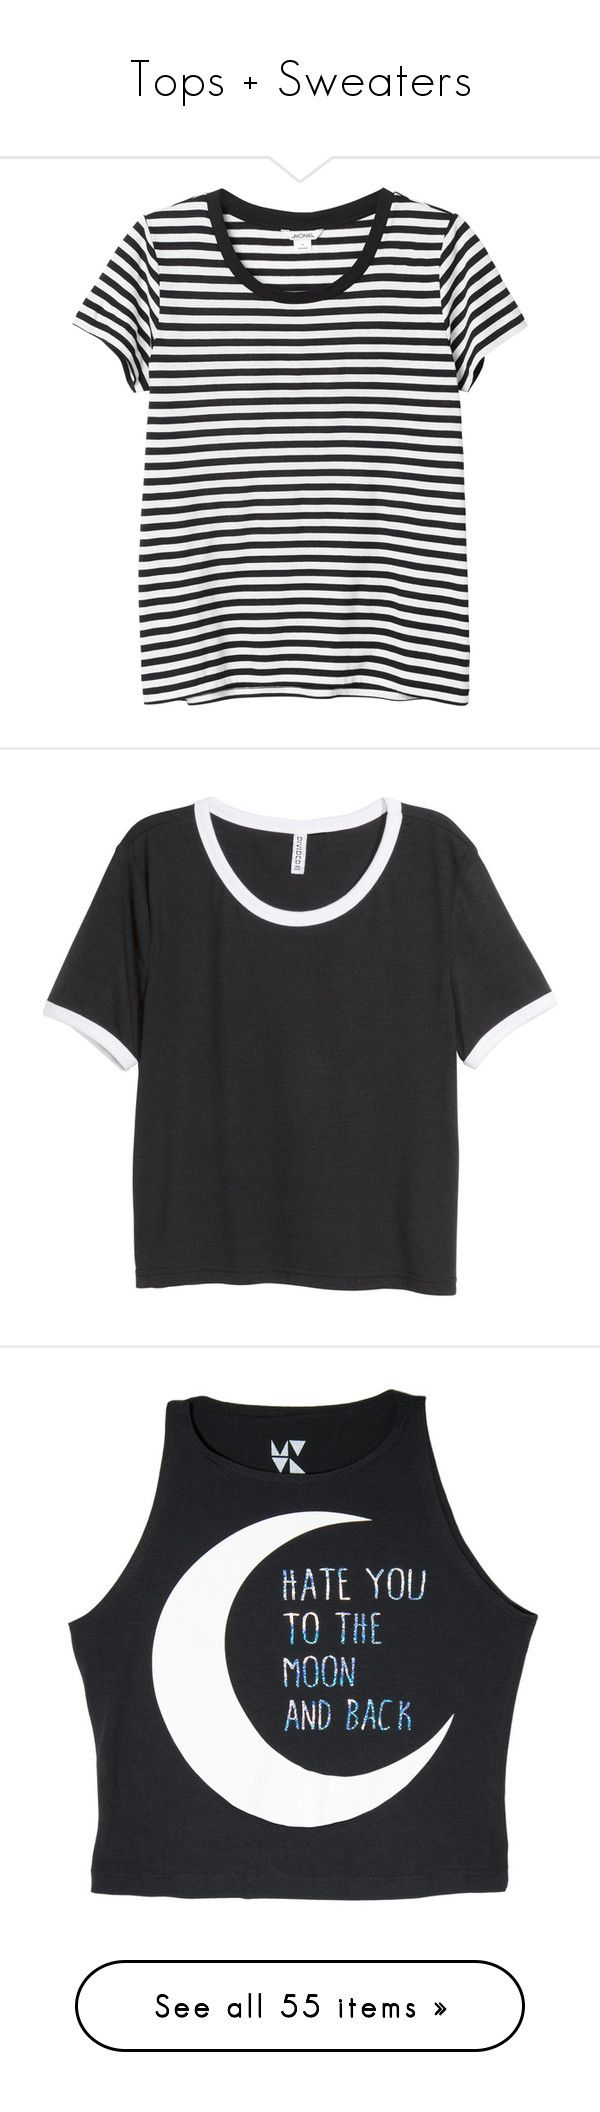 """""""Tops + Sweaters"""" by vikianna ❤ liked on Polyvore featuring tops, t-shirts, shirts, tees, sleek stripes, basic tee-shirt, tee-shirt, t shirt, basic tees and shirt tops"""